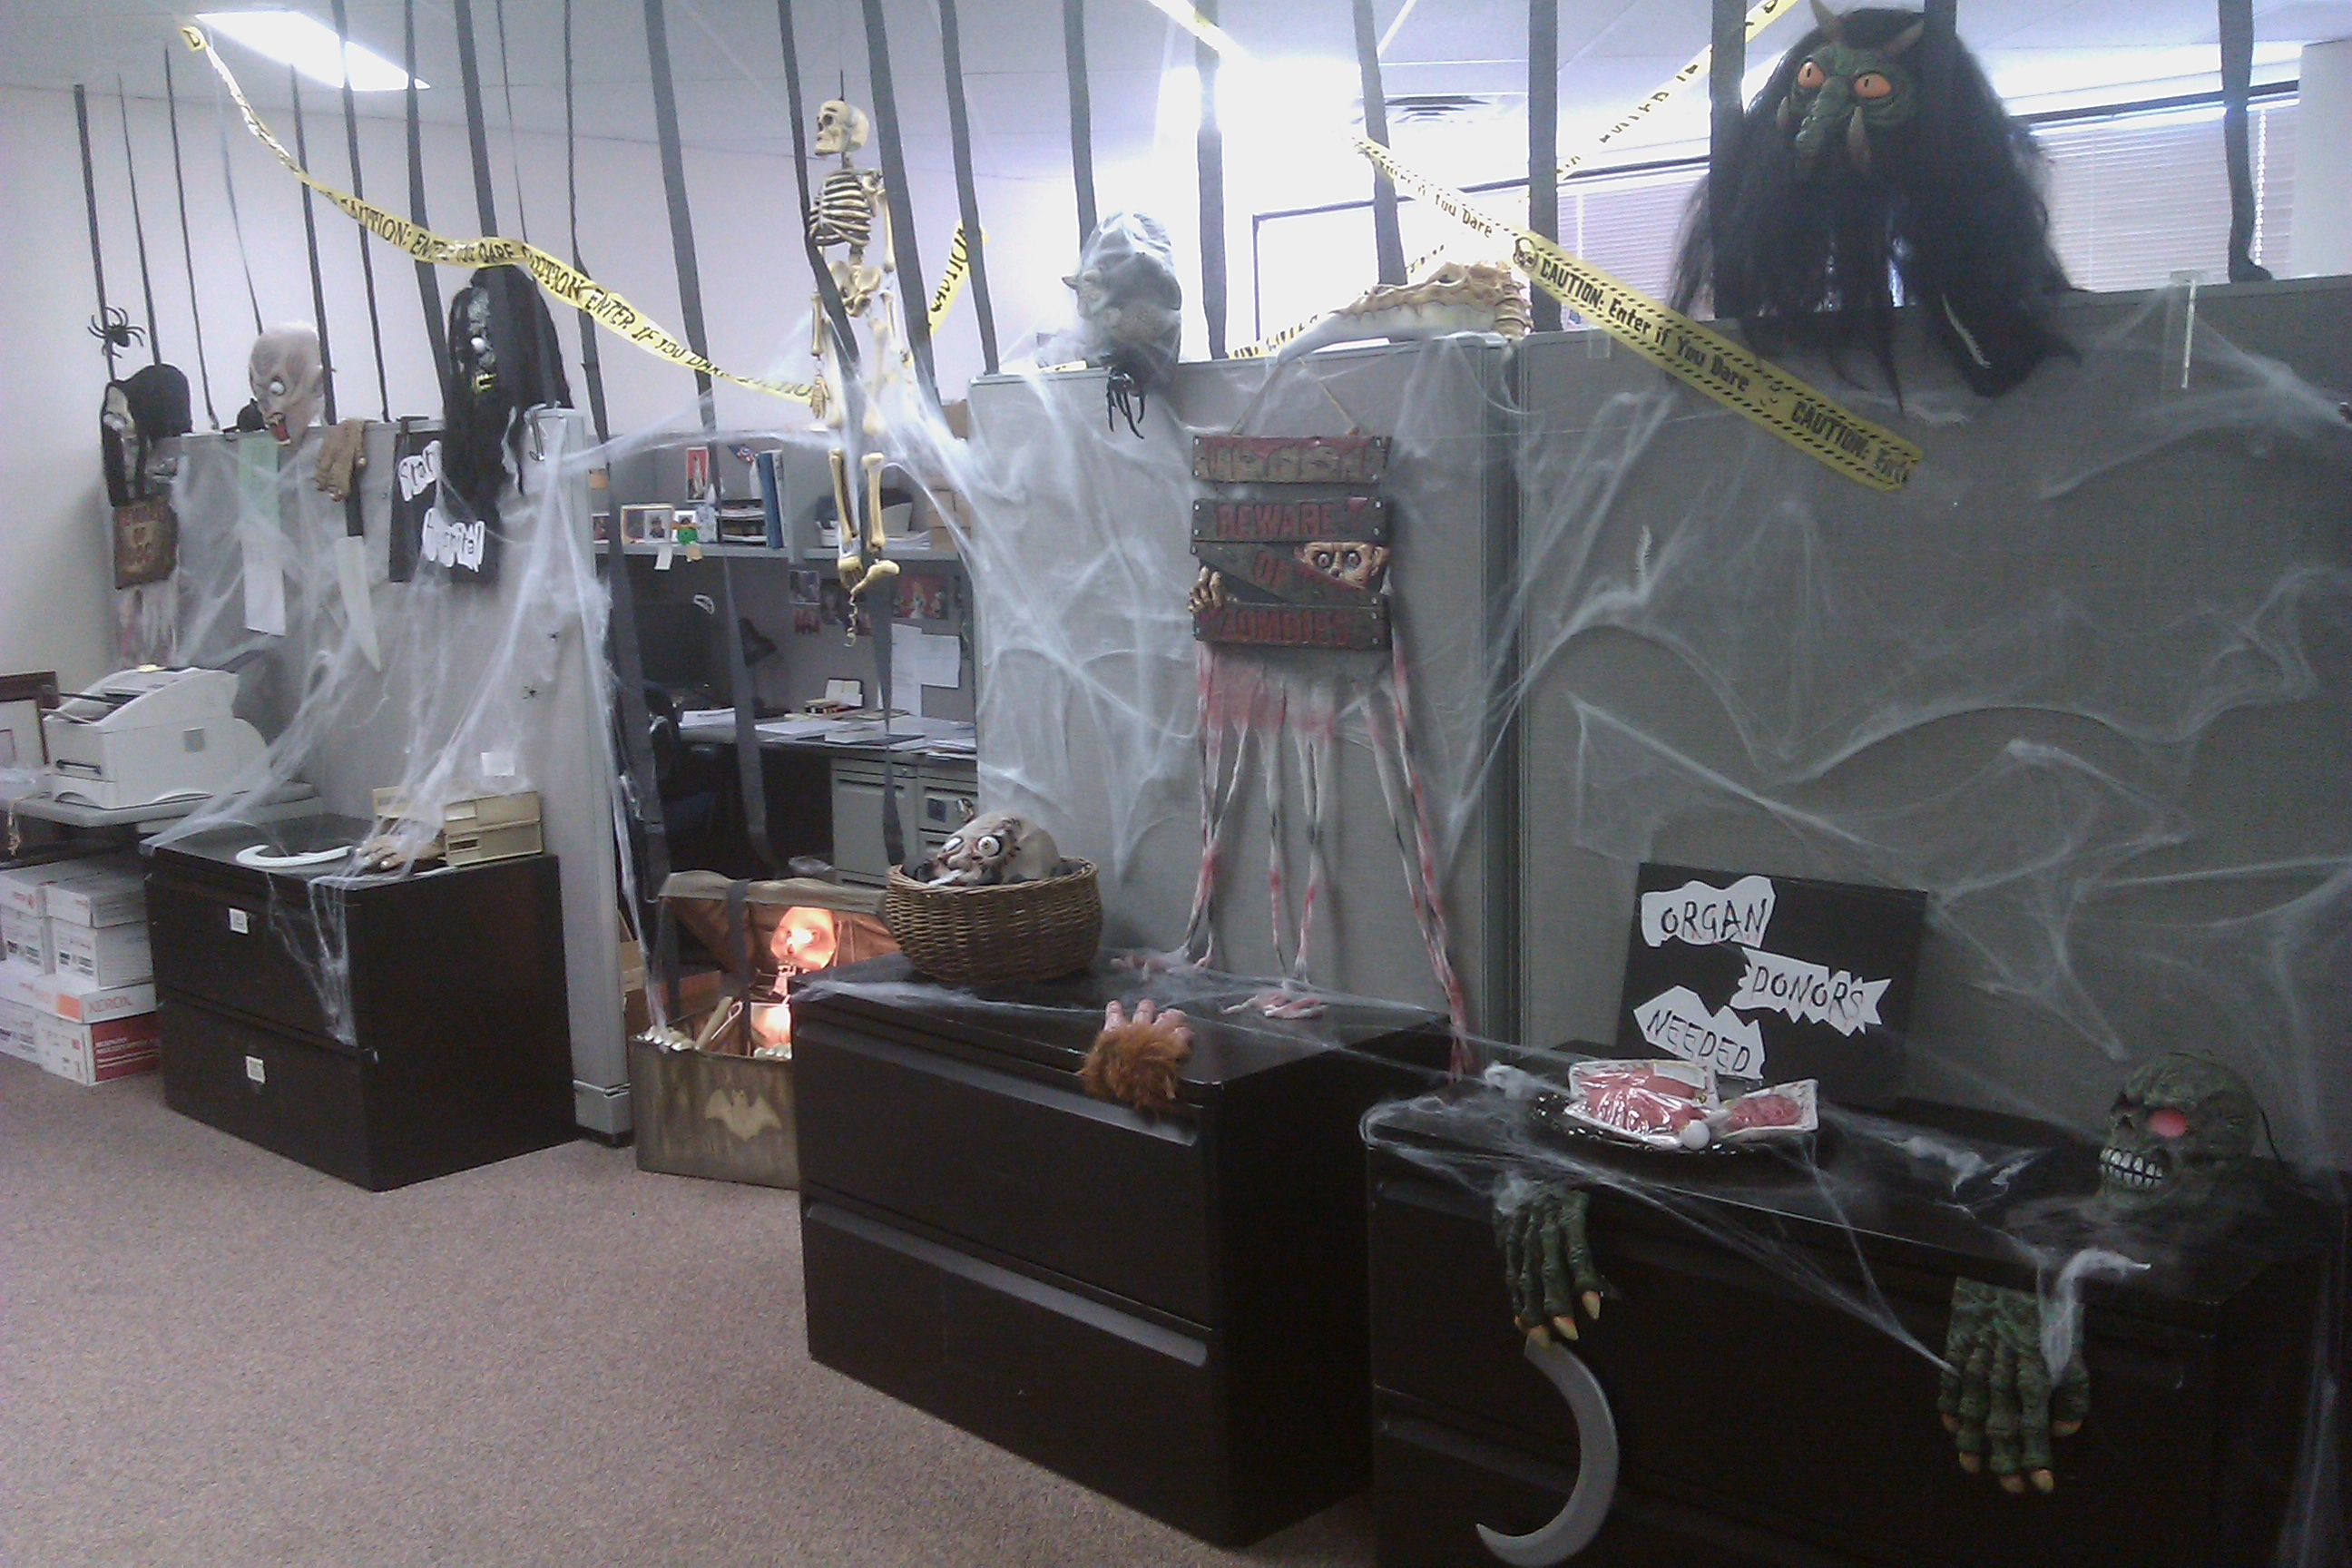 halloween decorations for the office into our. Black Bedroom Furniture Sets. Home Design Ideas